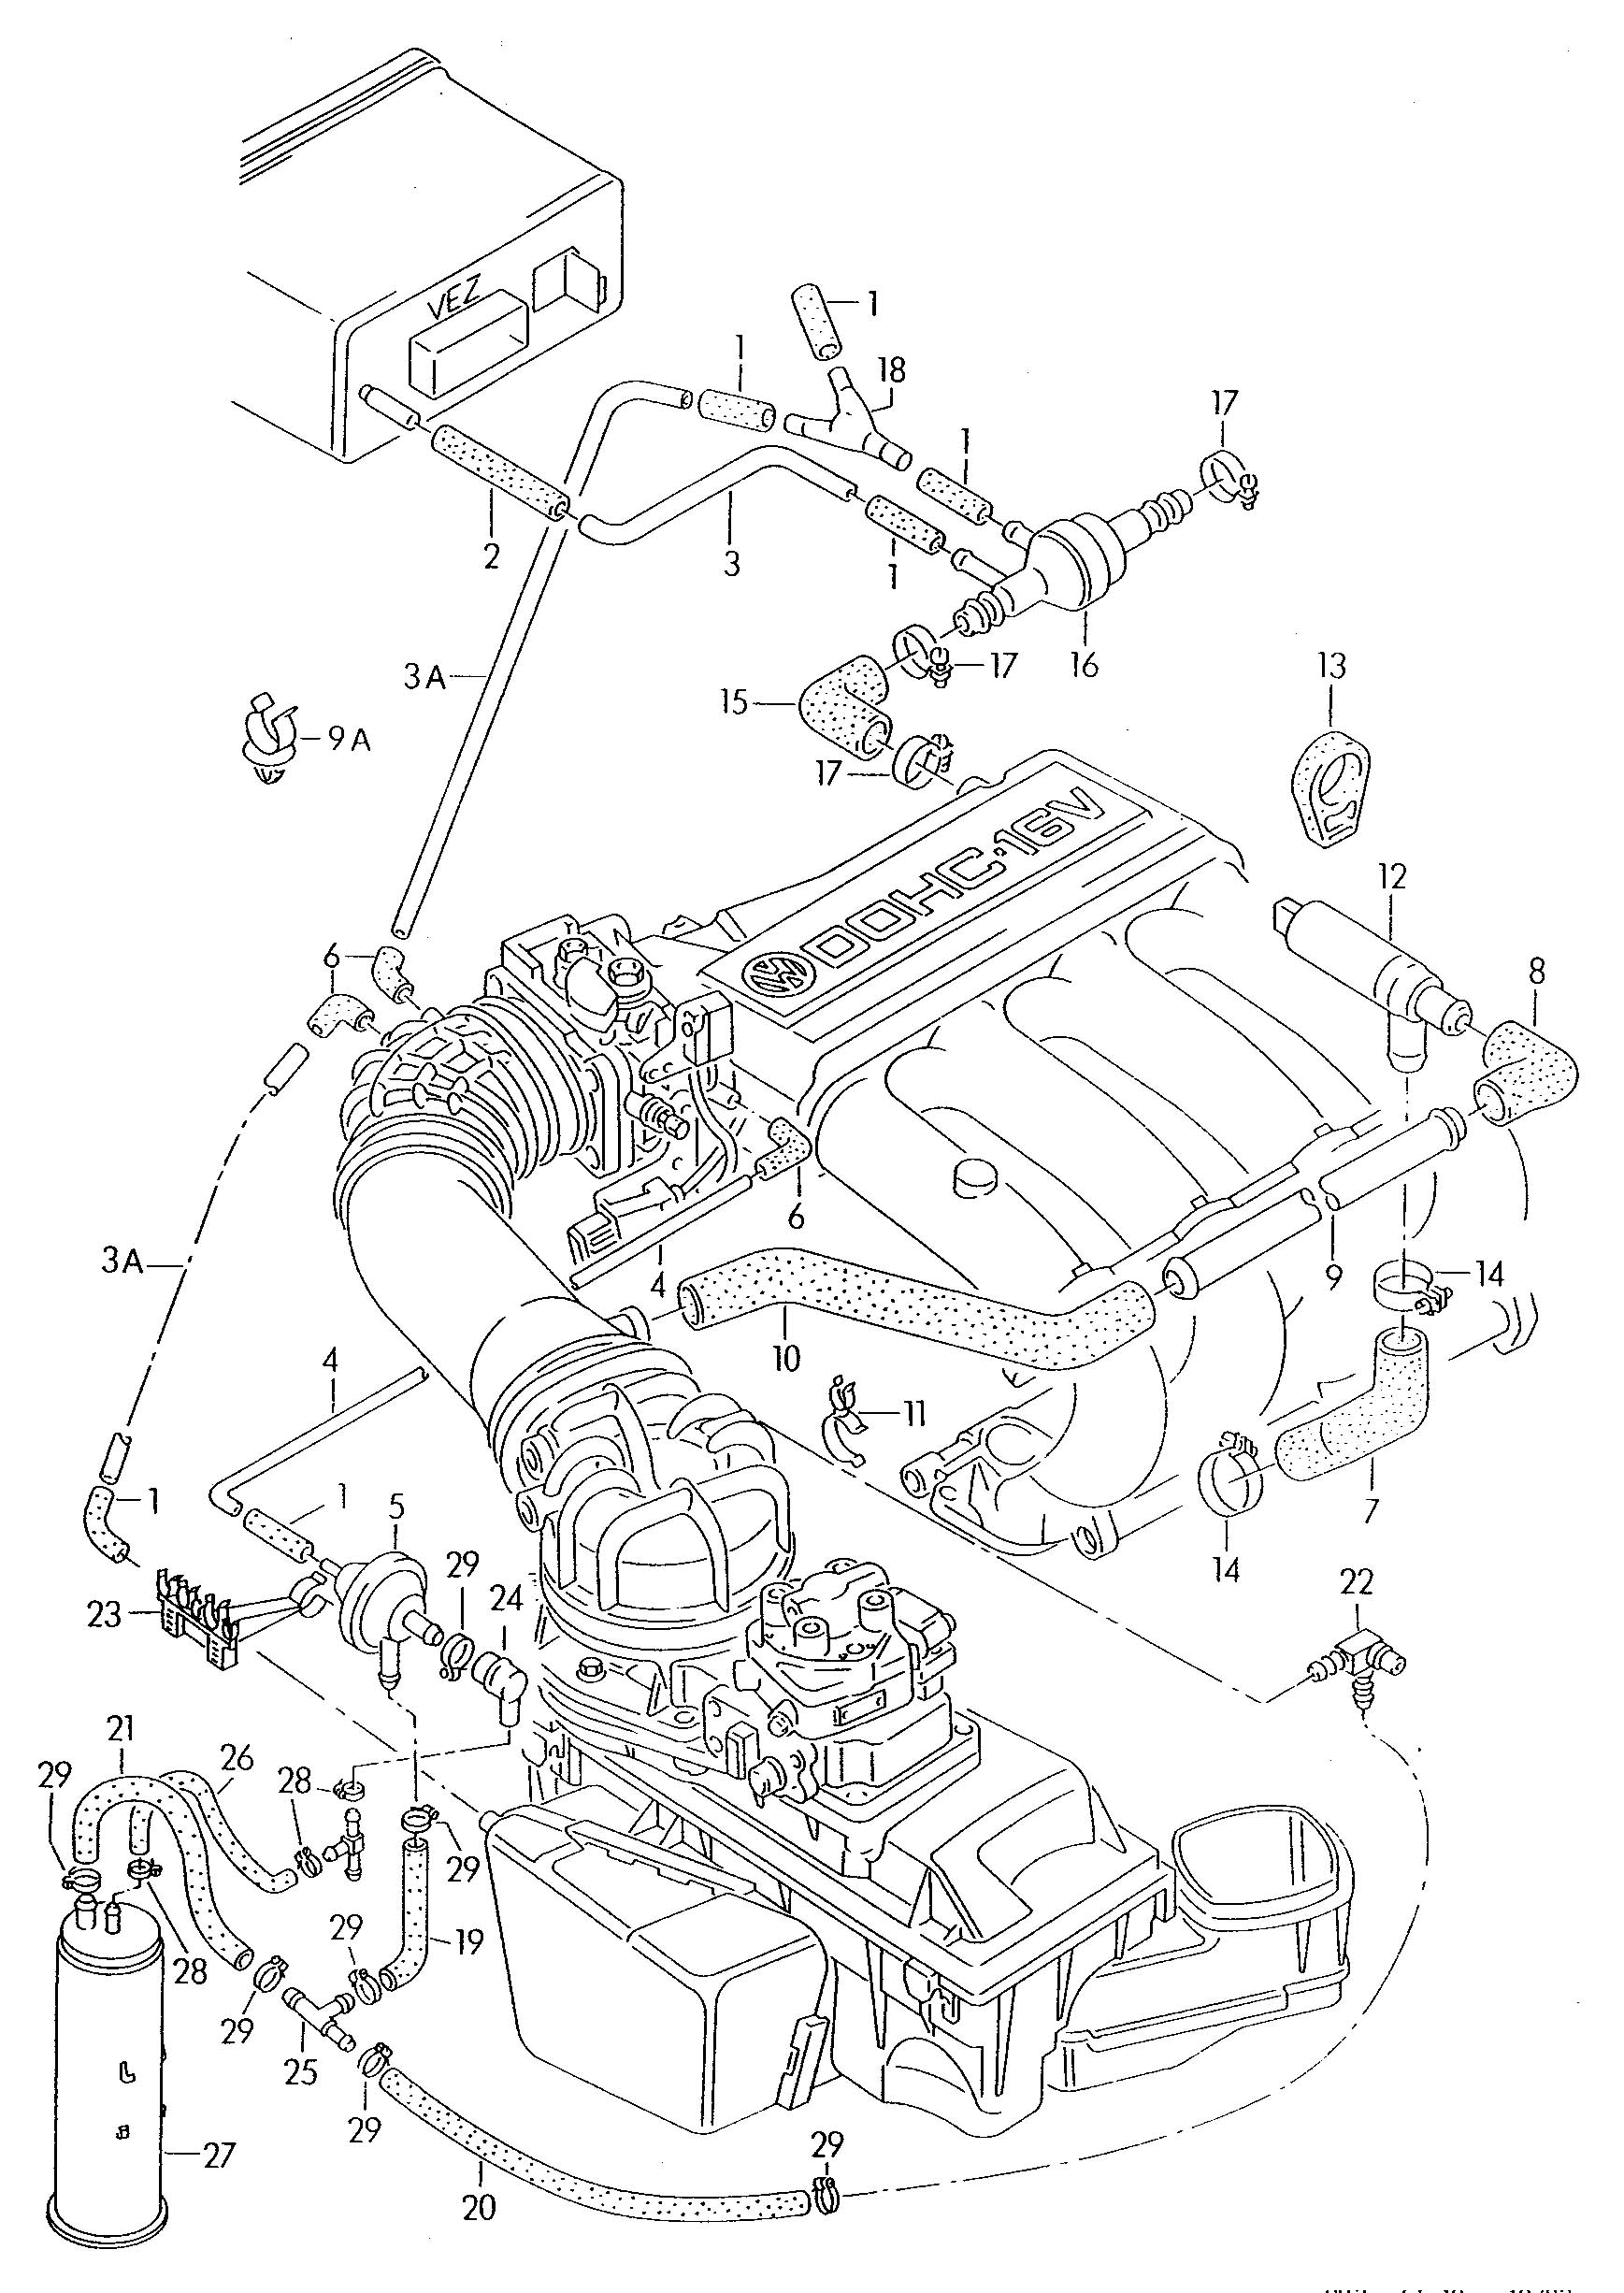 2003 vw beetle exhaust system diagram